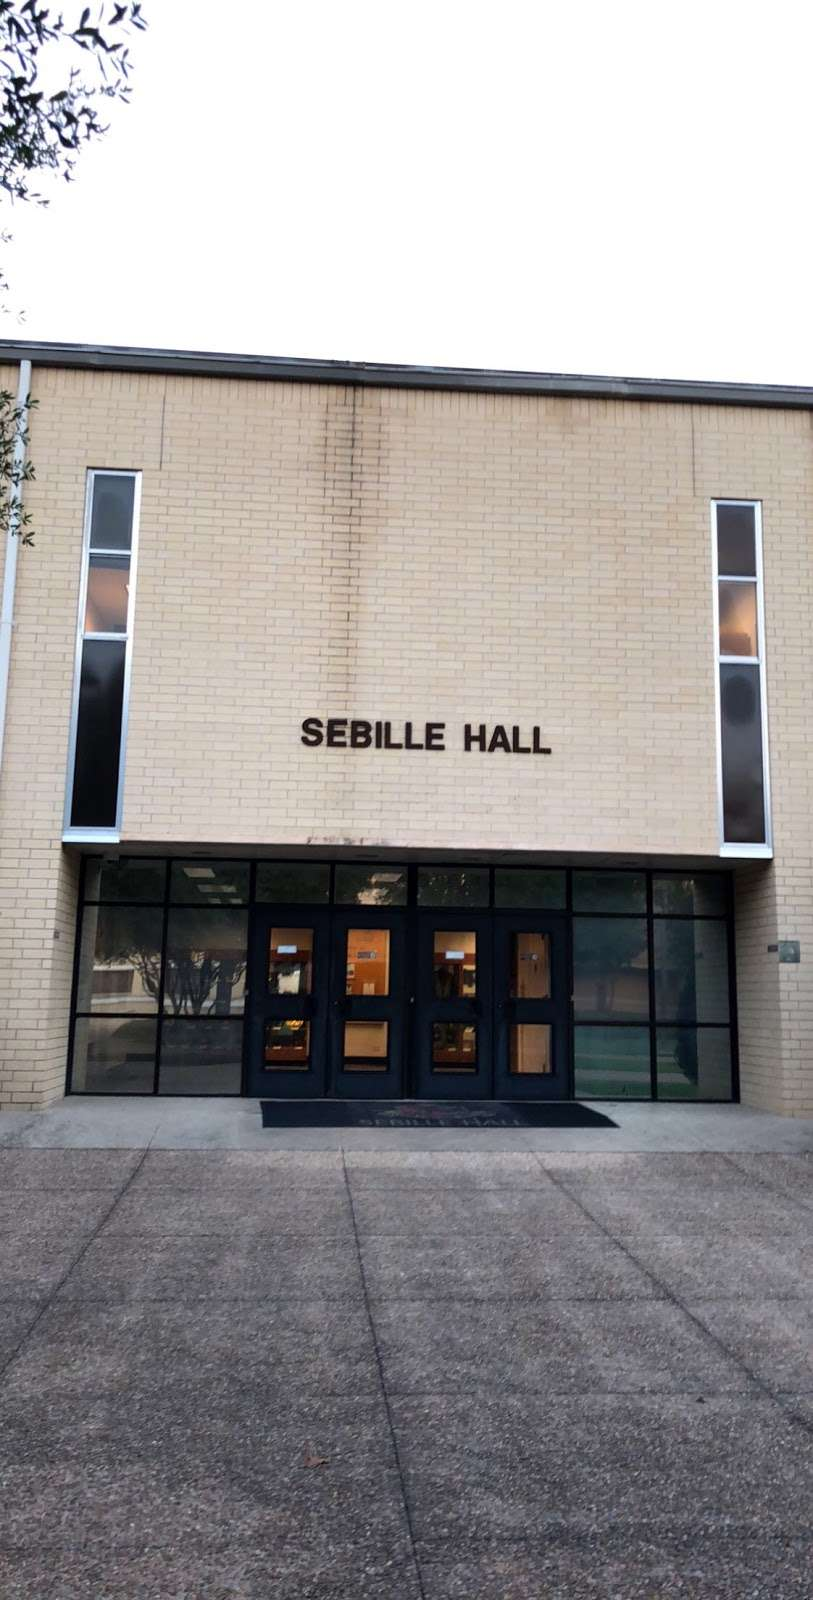 Sebille Hall - library  | Photo 1 of 2 | Address: Lackland AFB, San Antonio, TX 78236, USA